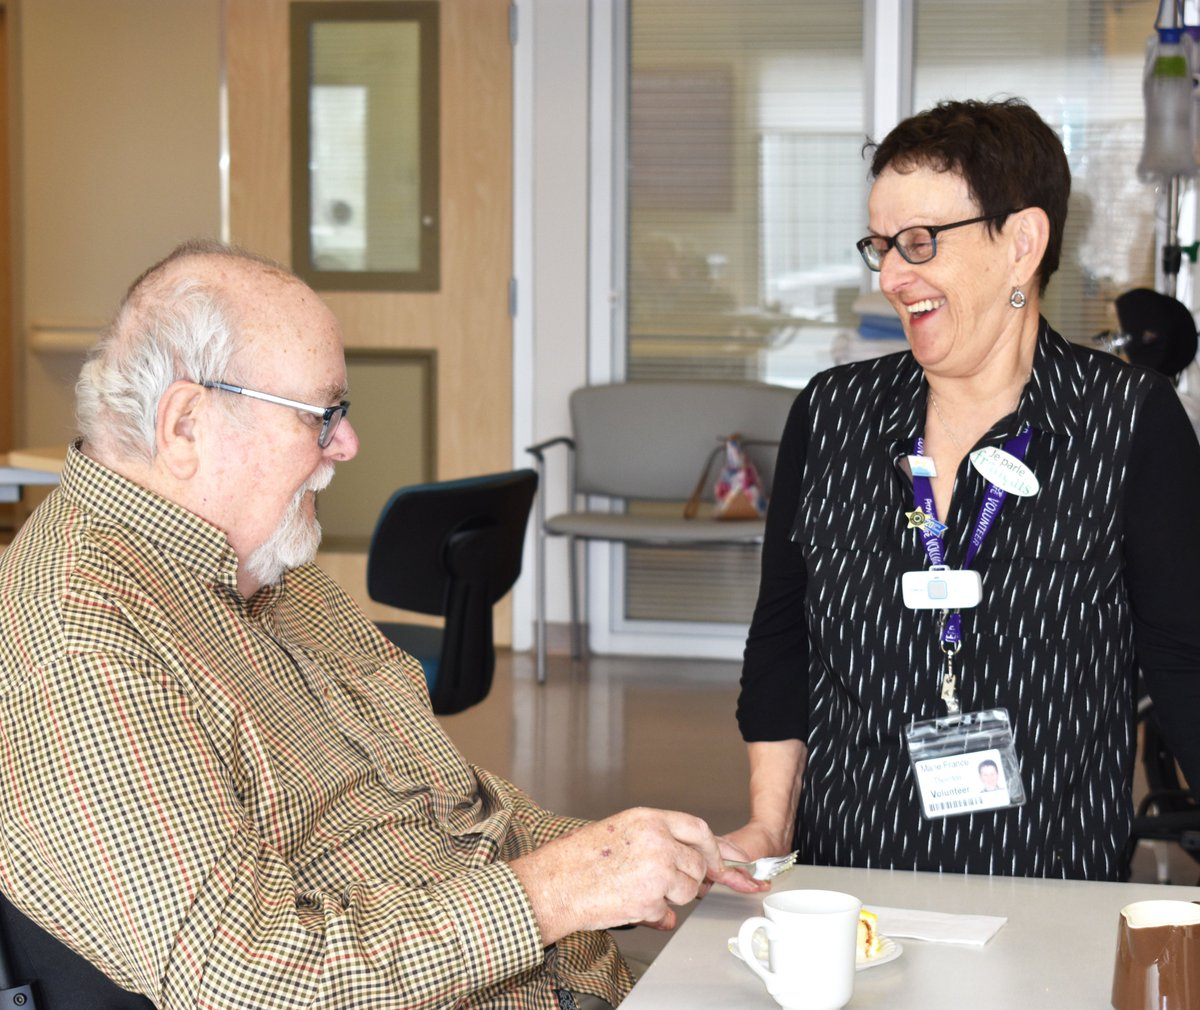 test Twitter Media - During #NationalVolunteerWeek we are delighted to celebrate the commitment and compassion shown by our volunteers who go above and beyond for our patients, clients and residents. Thank you for all that you do! #NVW19 https://t.co/dFC5j1LGXe